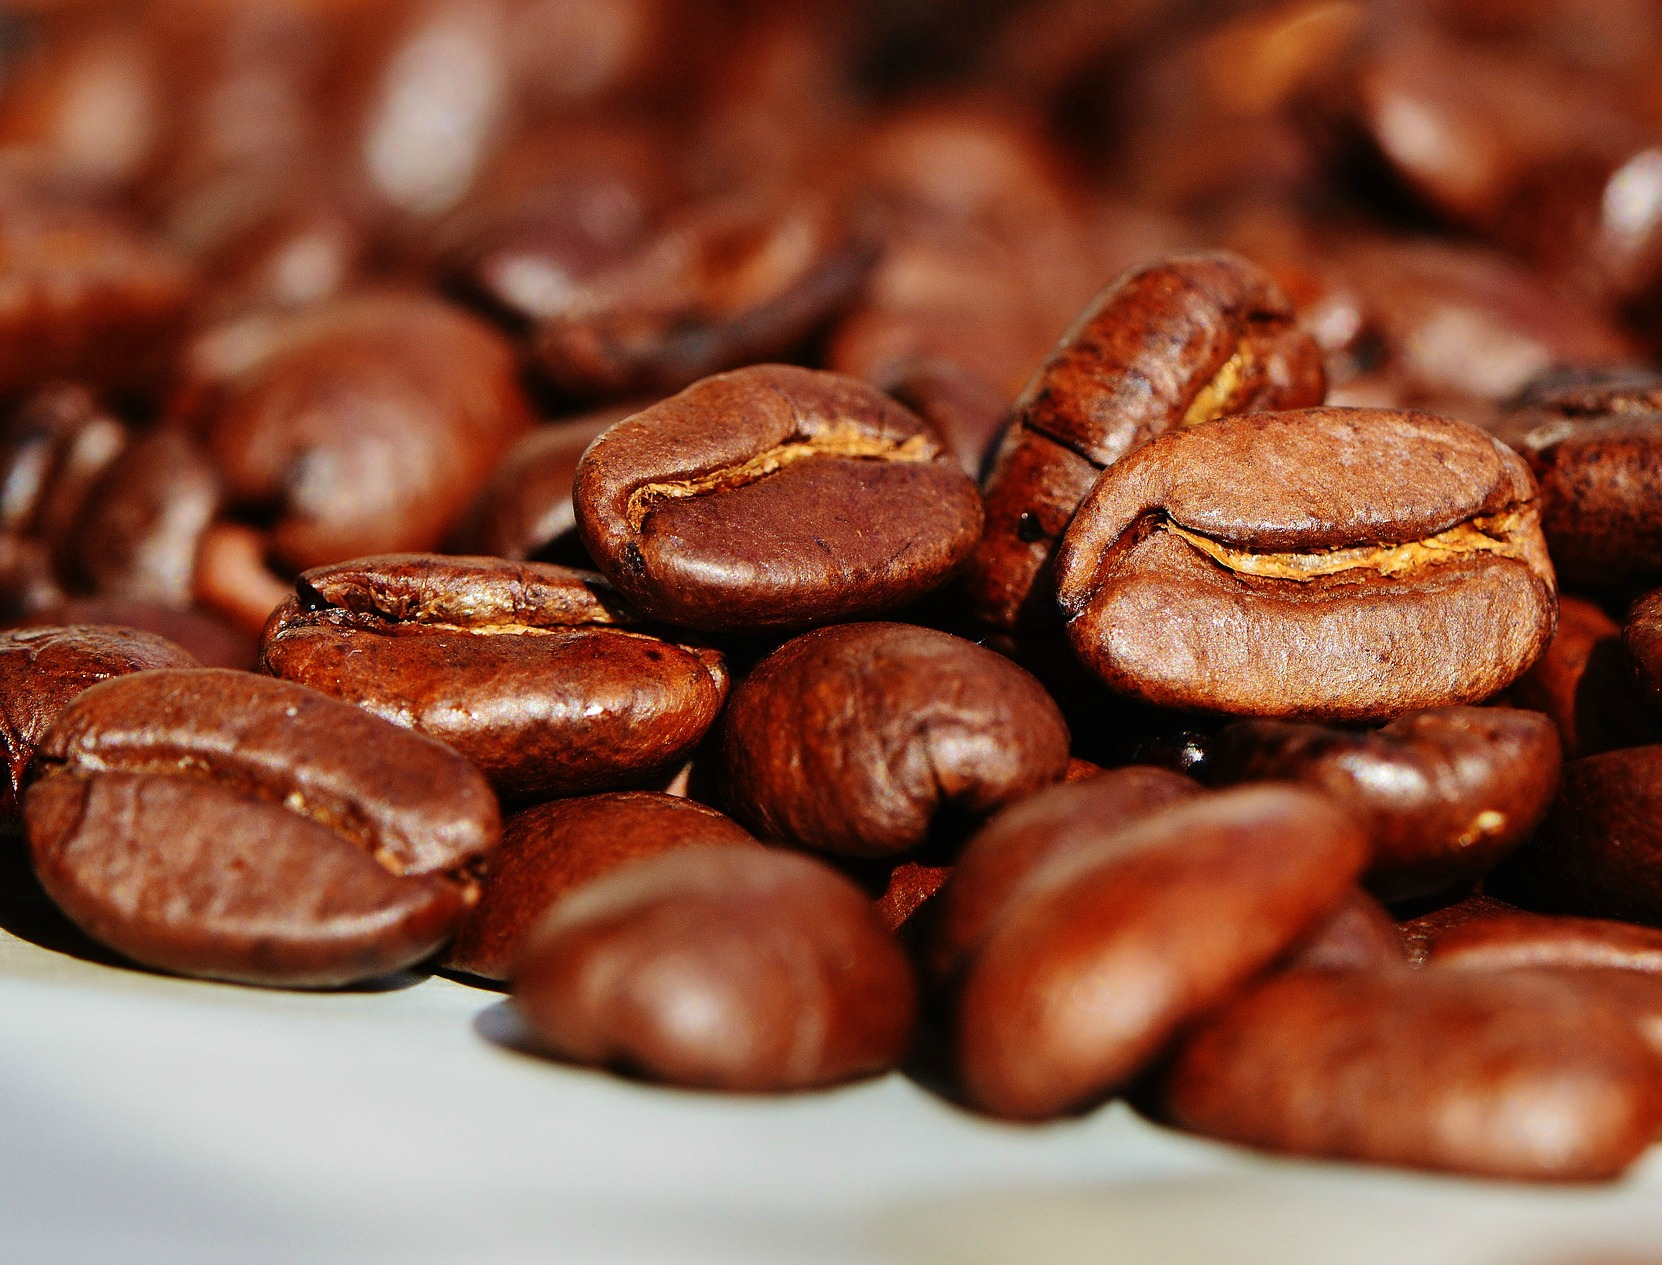 Coffee beans. We didn't always have coffee.